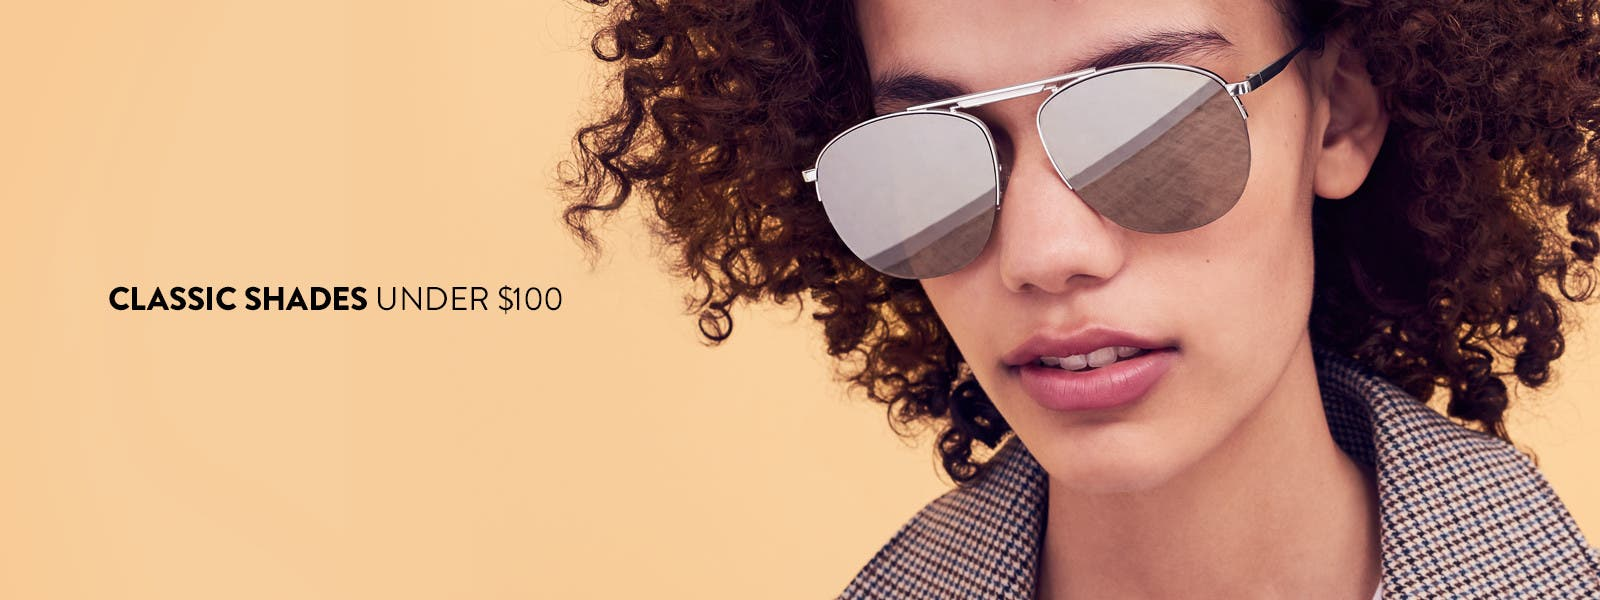 Classic shades under $100.